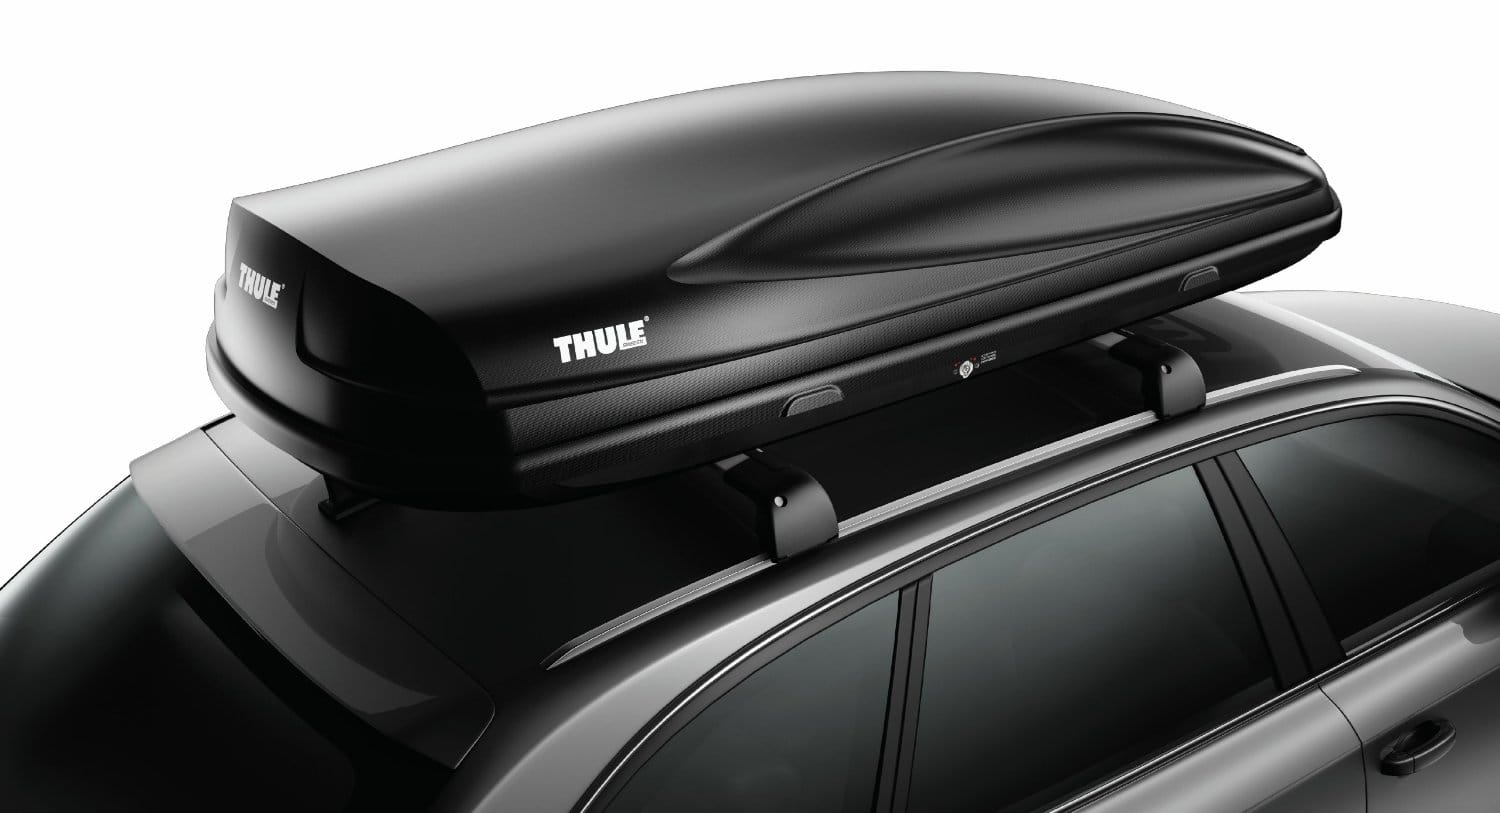 Thule Force Cargo Box XL $438 at Amazon